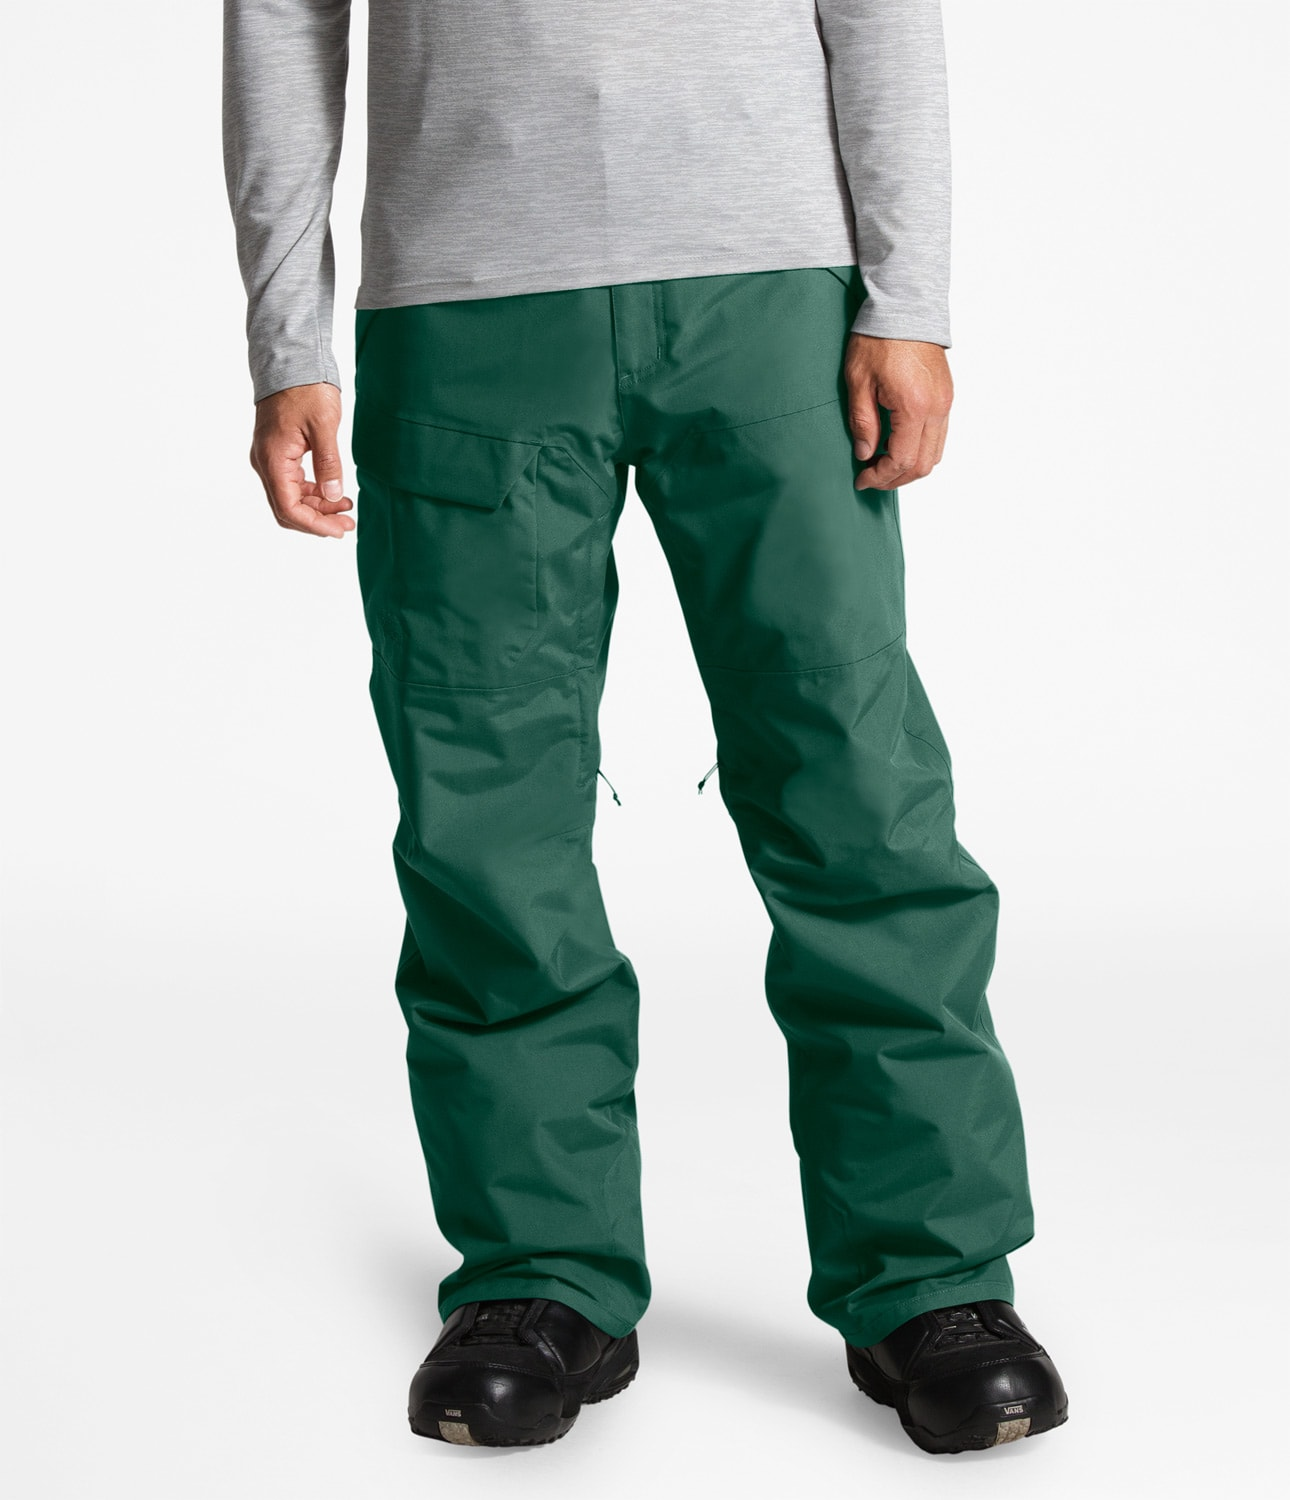 c3d7beec0 The North Face Freedom Insulated Ski Pants 2019